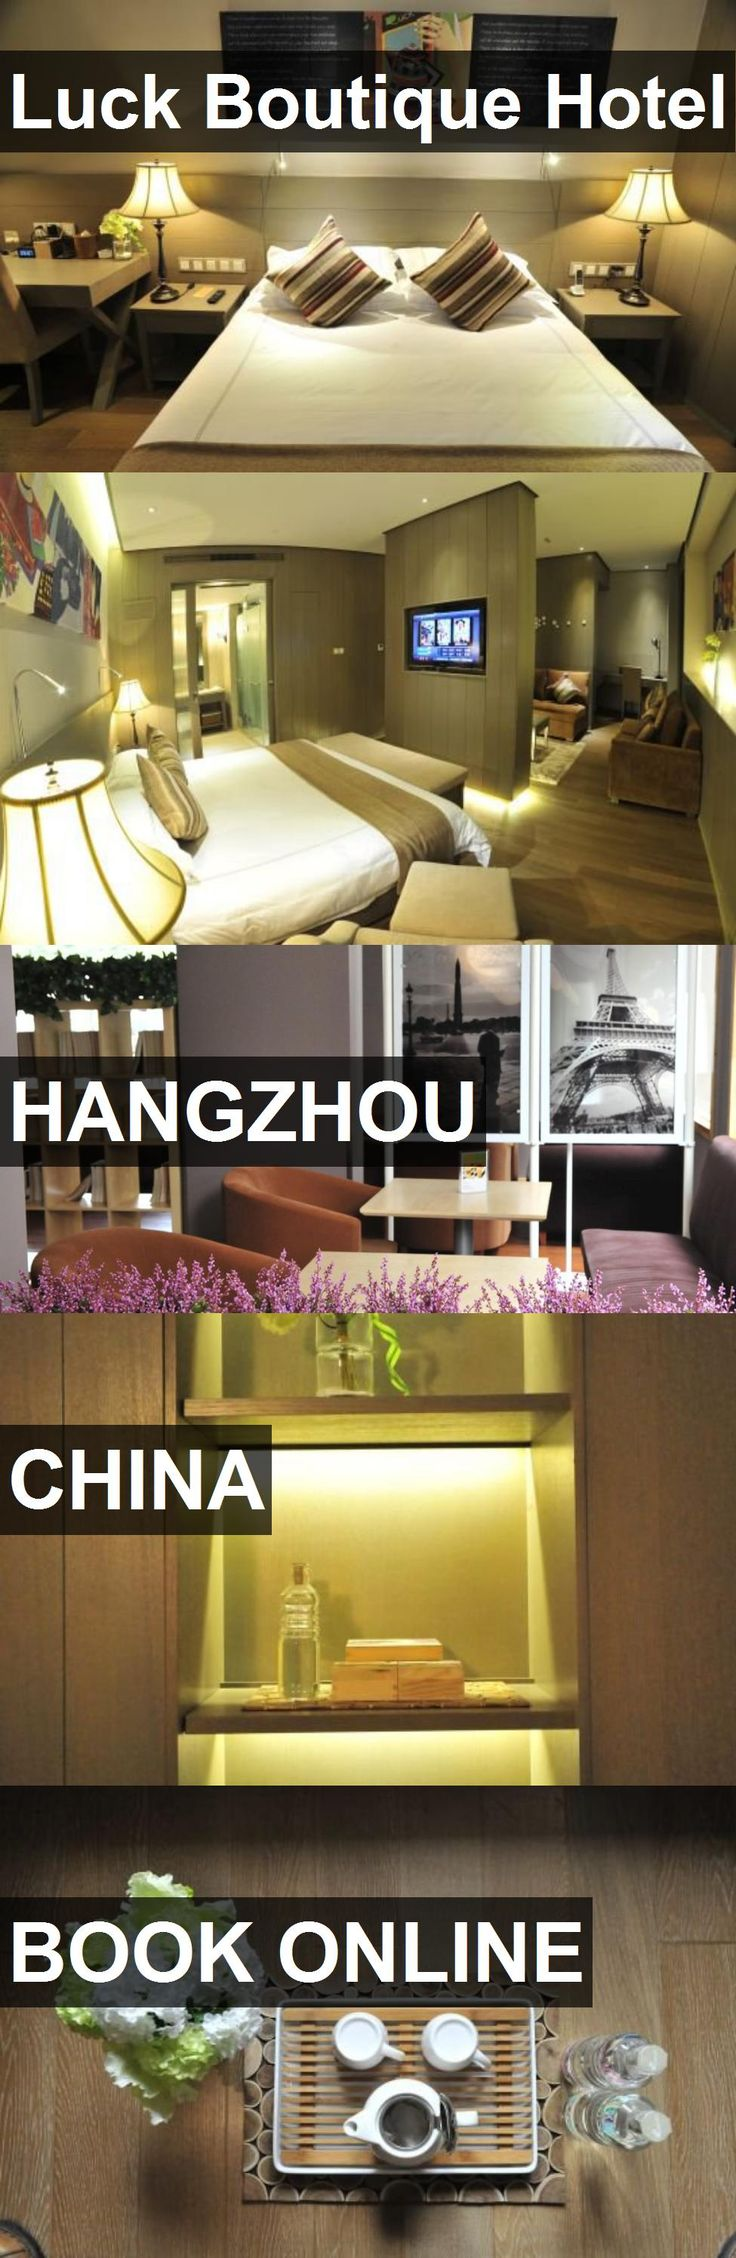 Luck Boutique Hotel in Hangzhou, China. For more information, photos, reviews and best prices please follow the link. #China #Hangzhou #travel #vacation #hotel